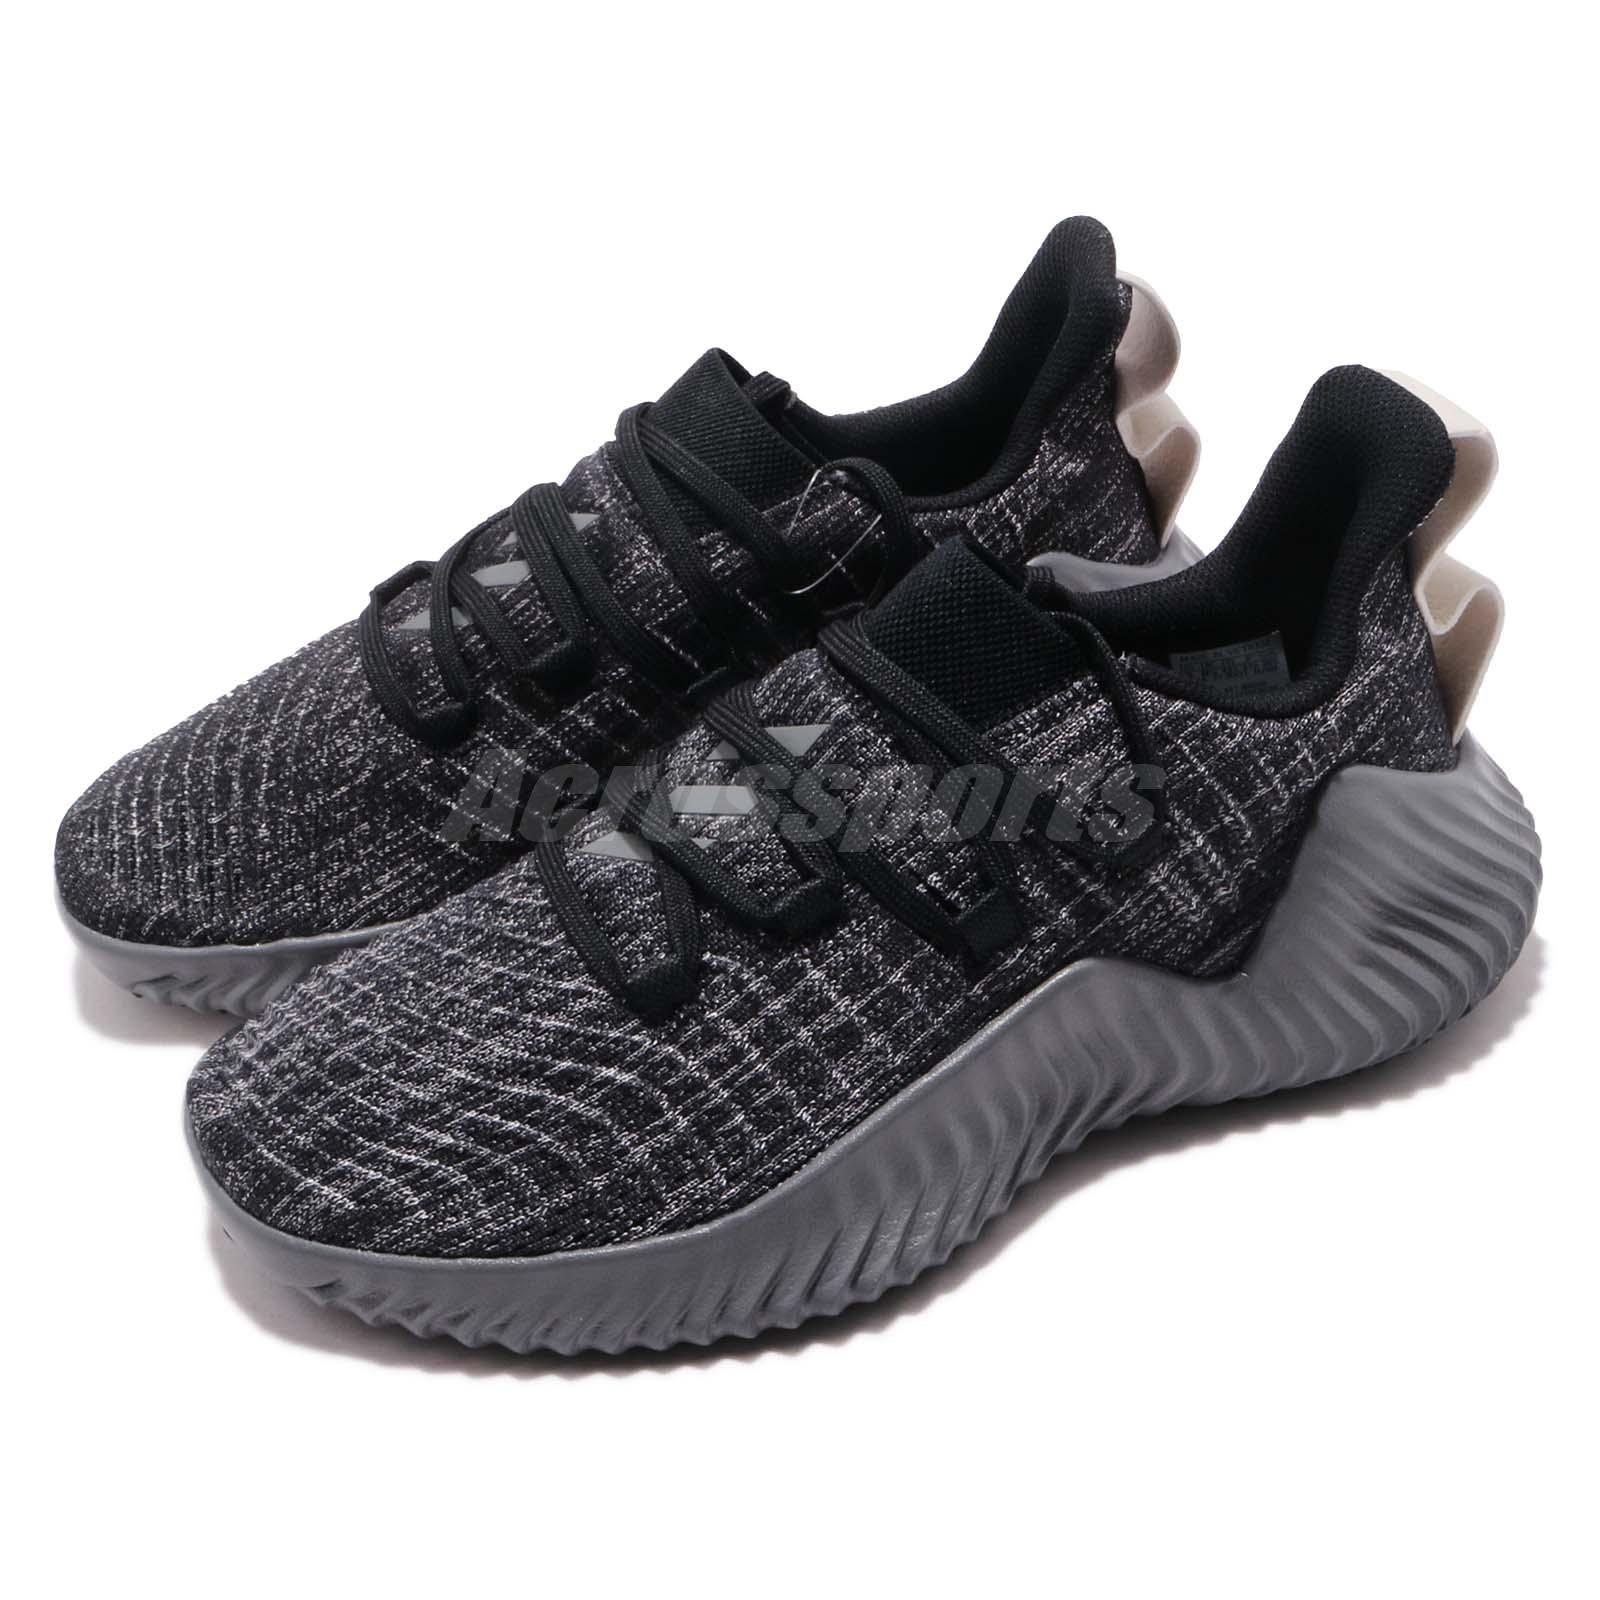 Details about adidas Alphabounce Trainer Black Grey Raw White Men Cross  Training Shoes BB9250